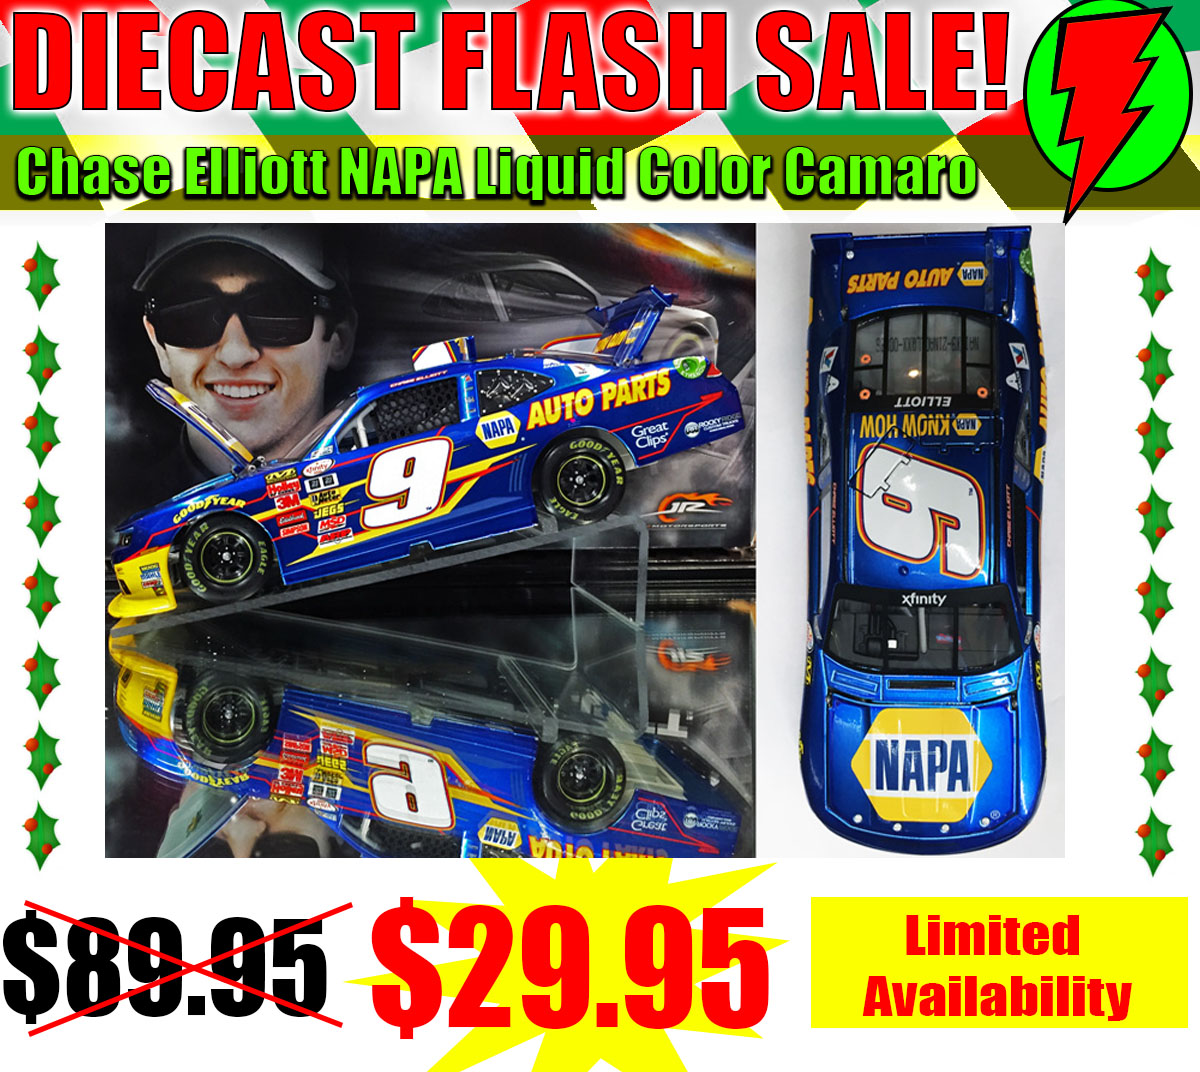 chase elliott diecast flash sale